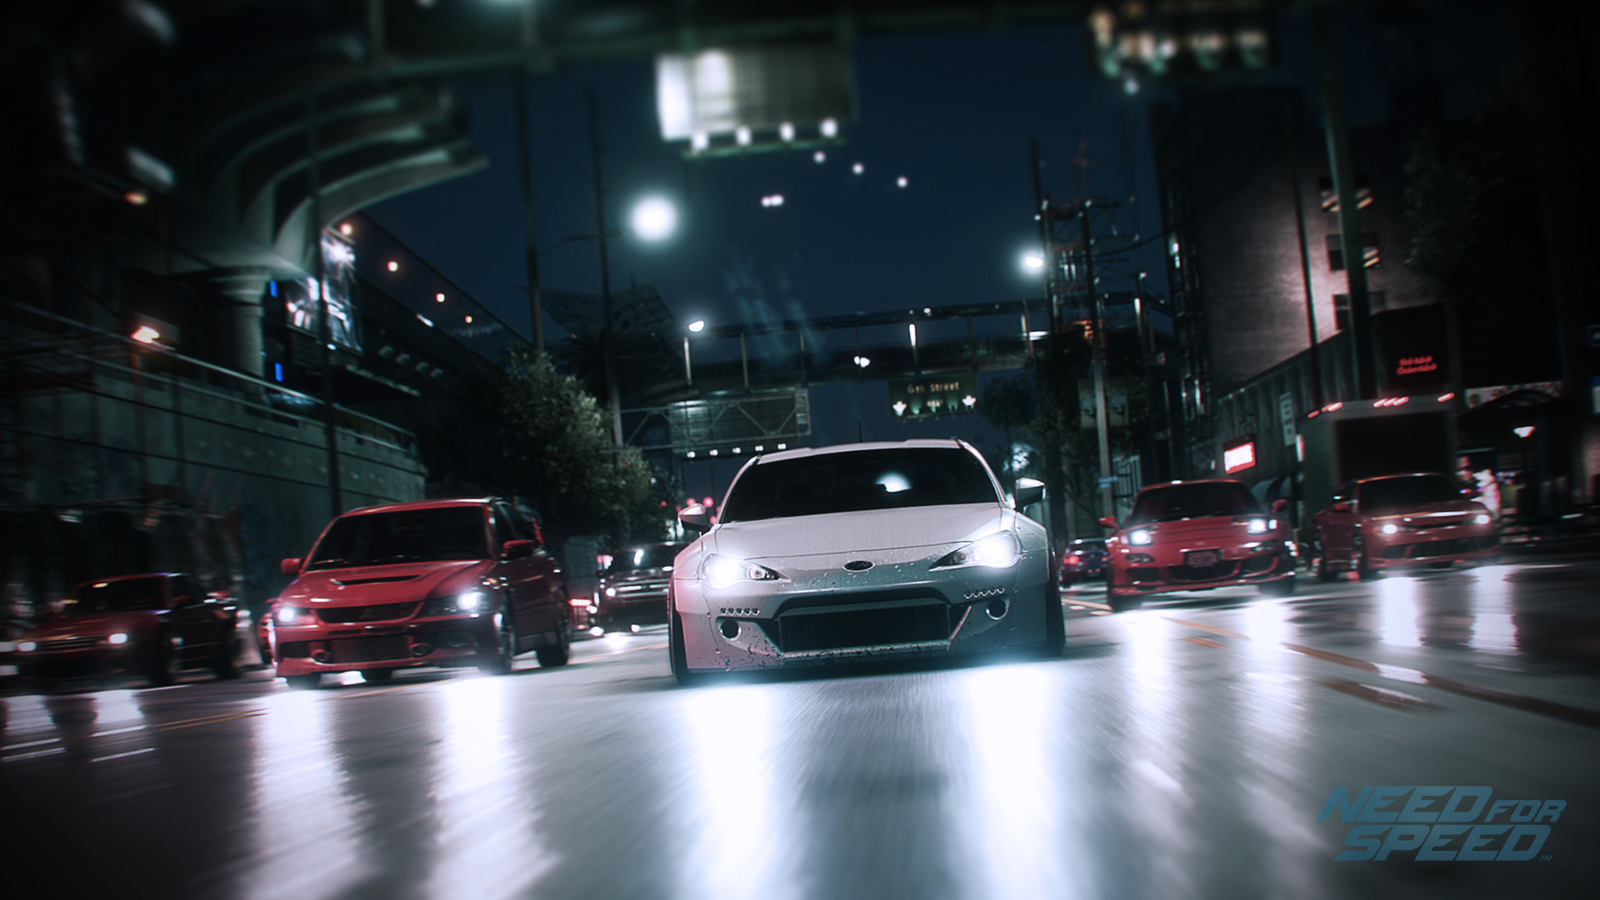 Need for Speed for PS4 image